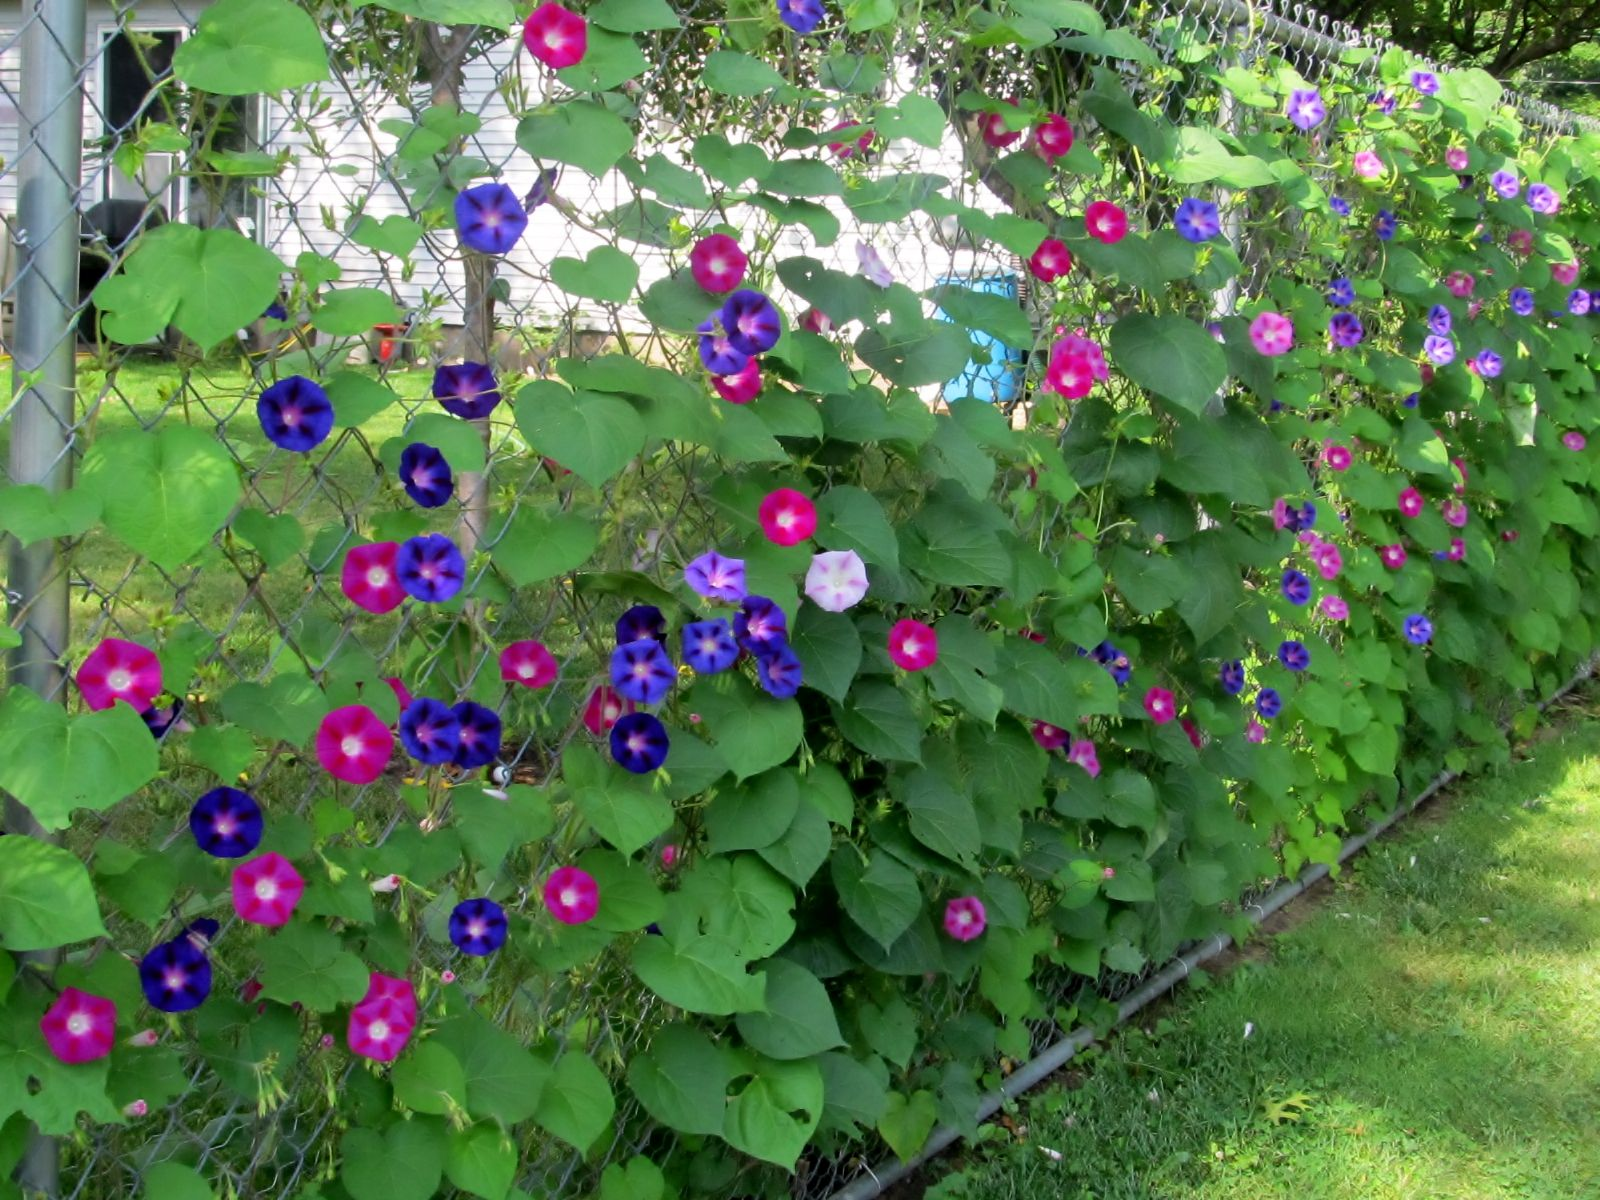 Growing Morning Glories And Clematis Up Chain Link Fence For Privacy Privacy Plants Backyard Fences Privacy Landscaping